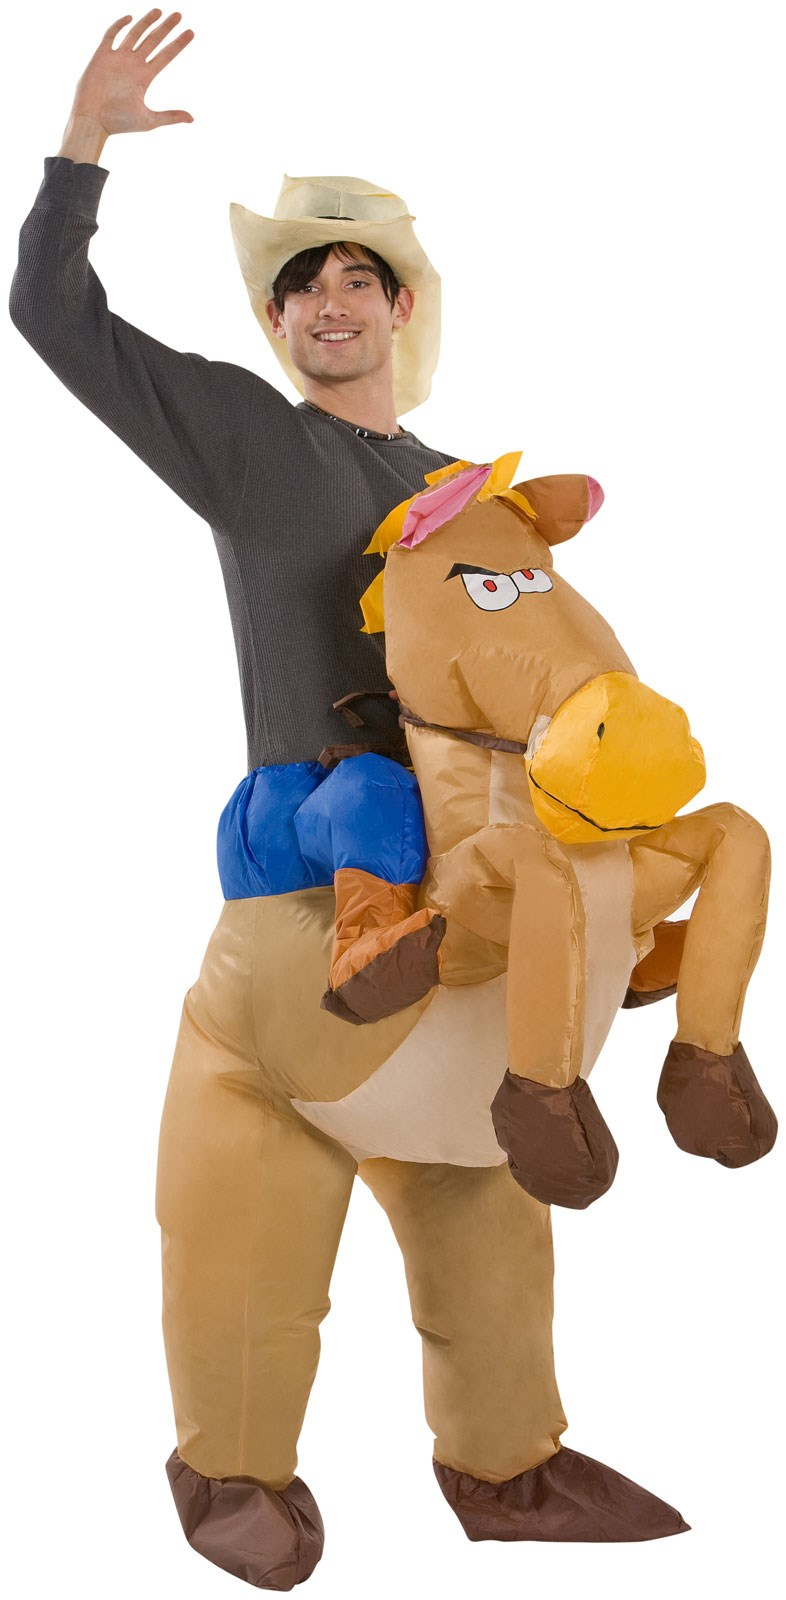 Adult Riding on Horse Illusion Inflatable Costume